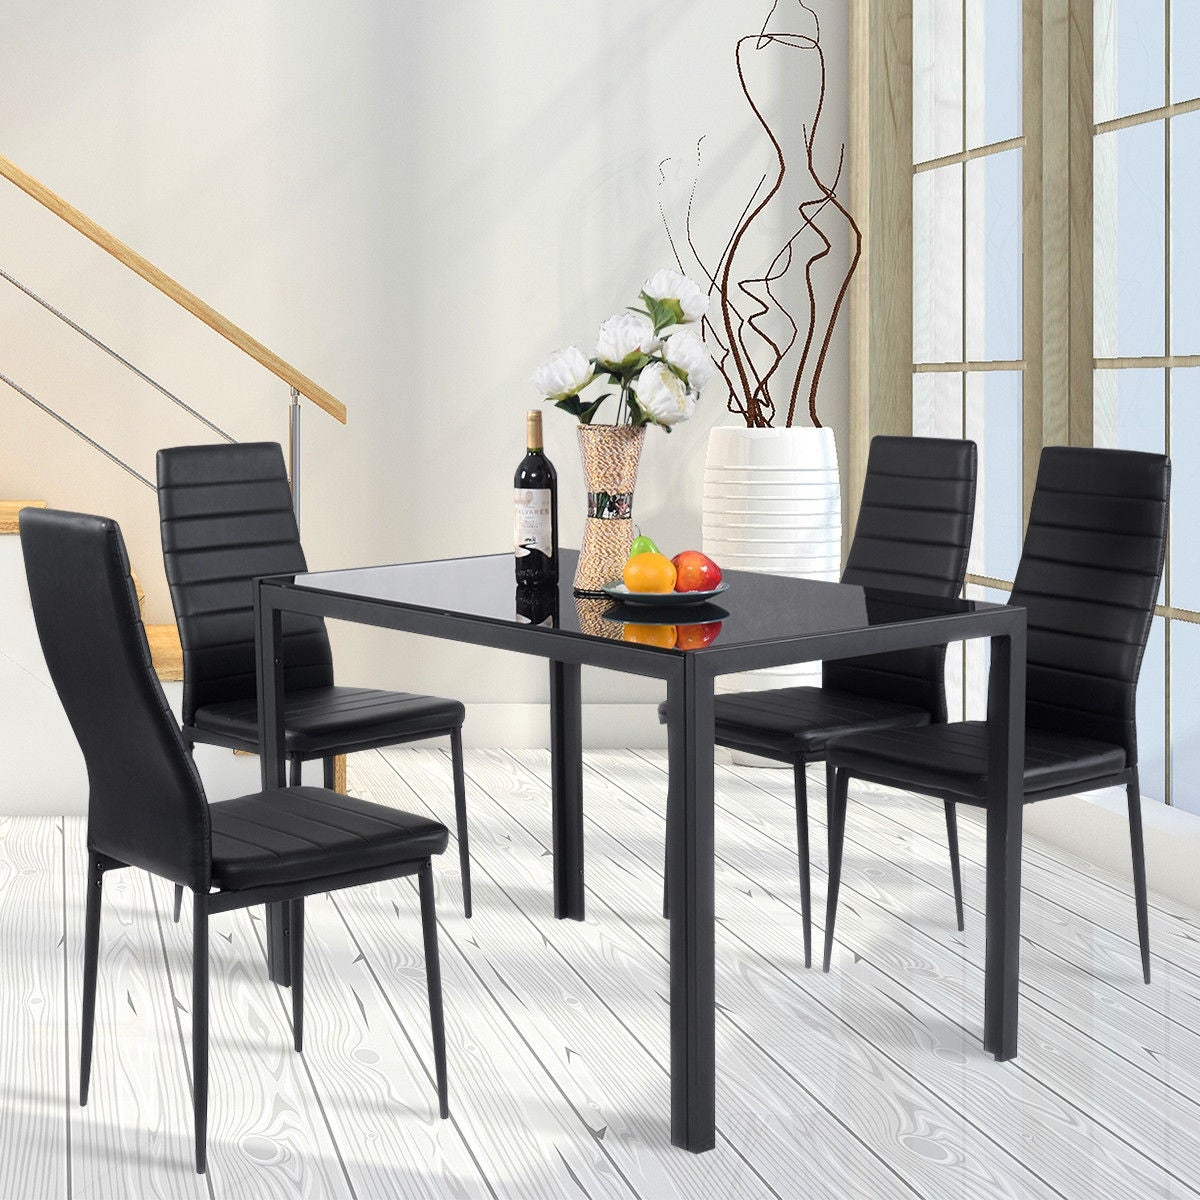 35e3d06e1ac Costway 5 Piece Kitchen Dining Set Glass Metal Table and 4 Chairs Breakfast  Furniture - Black